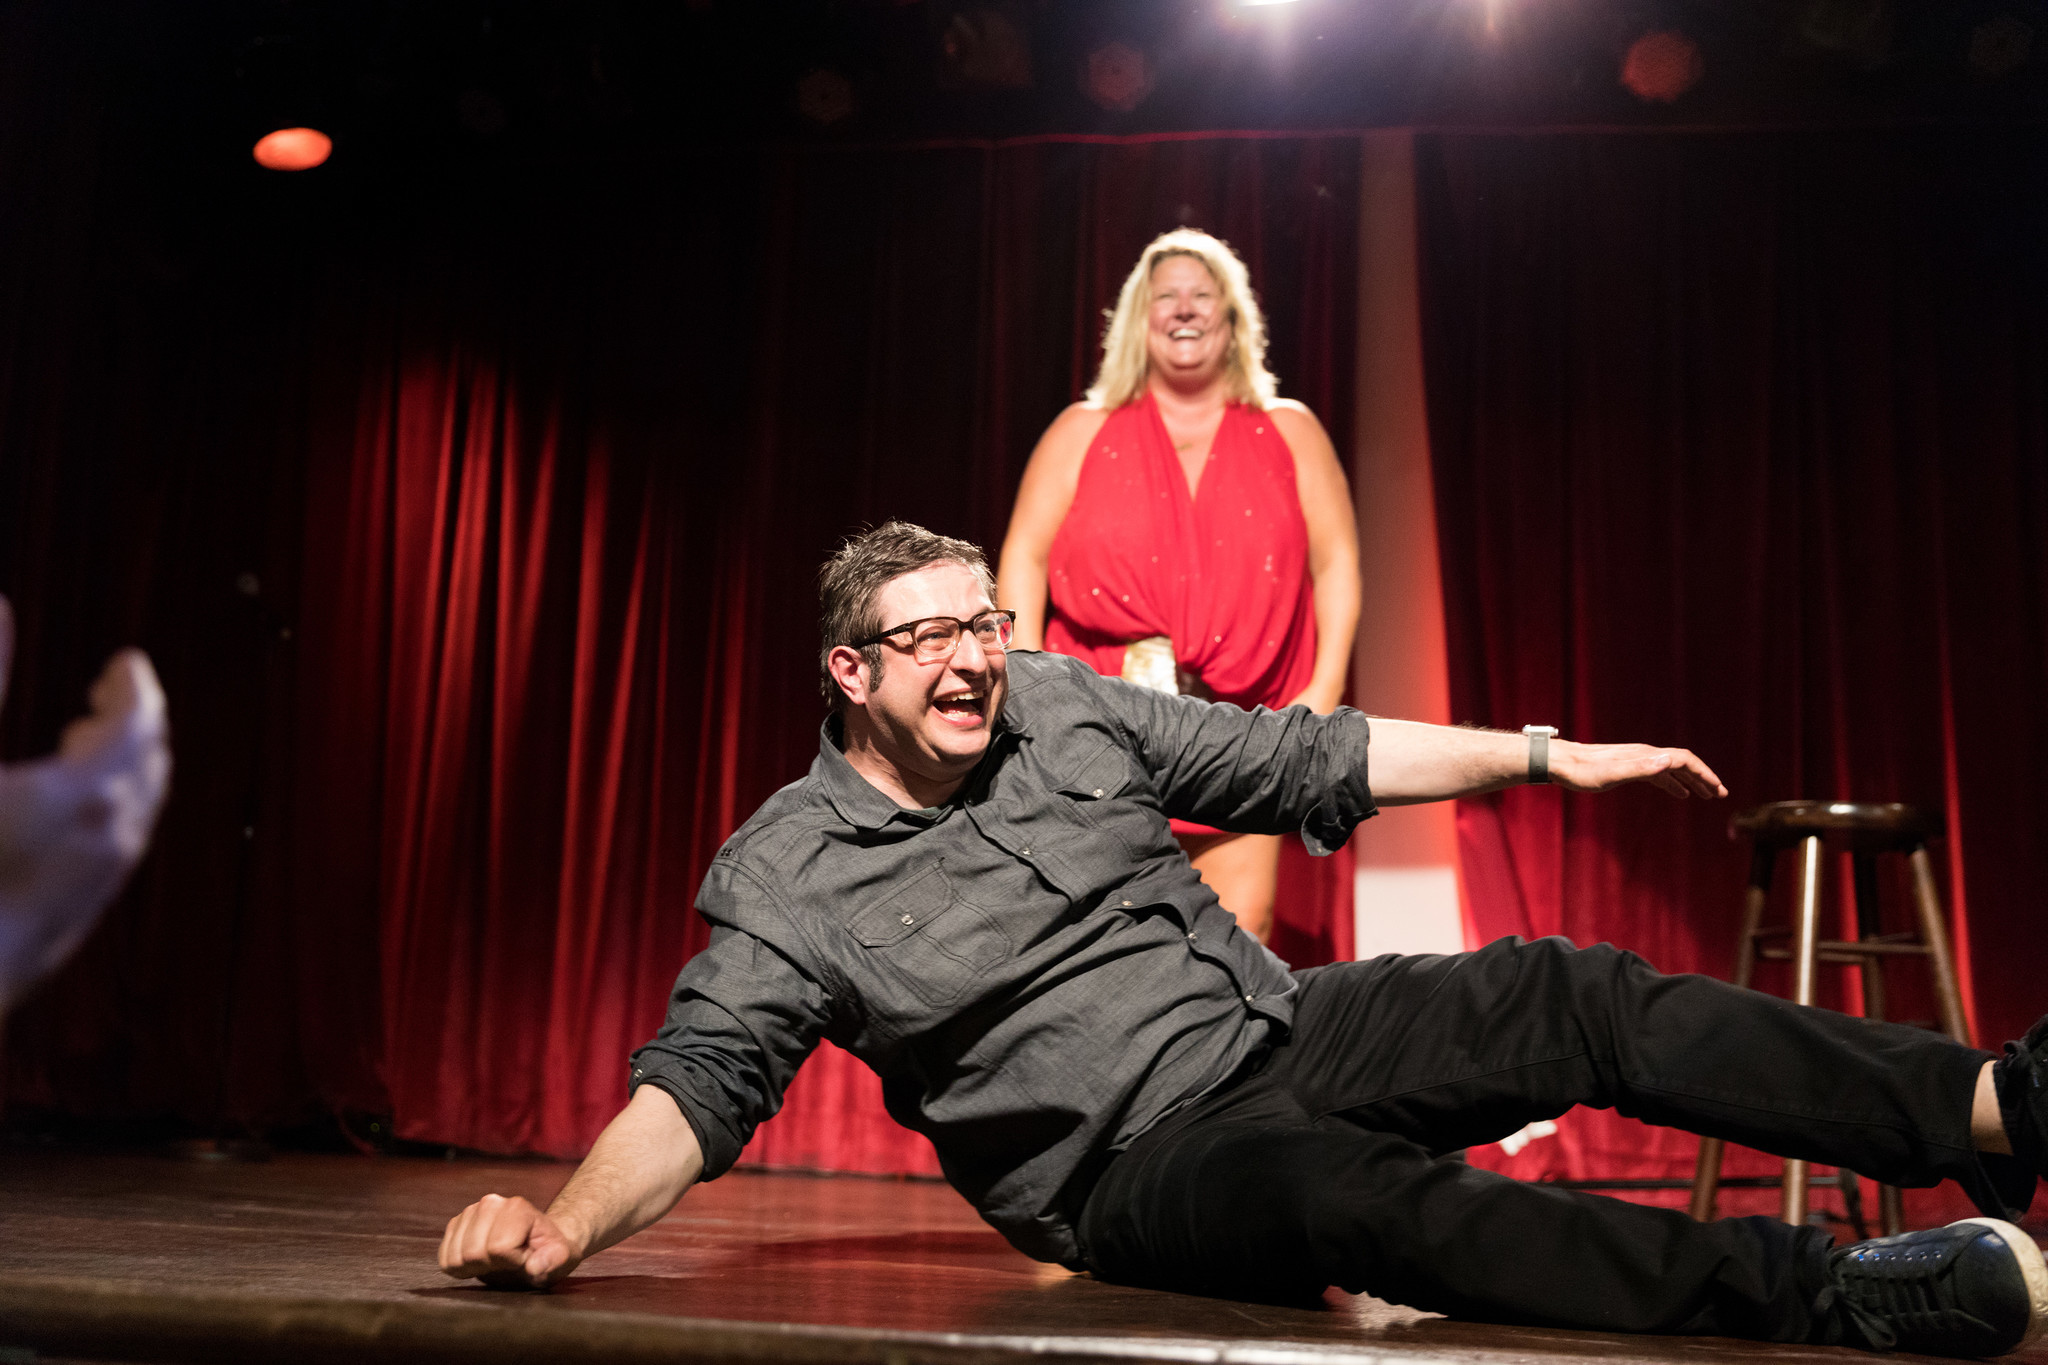 'It Started as a Joke': New Eugene Mirman documentary focuses on comedy and moves towards tears